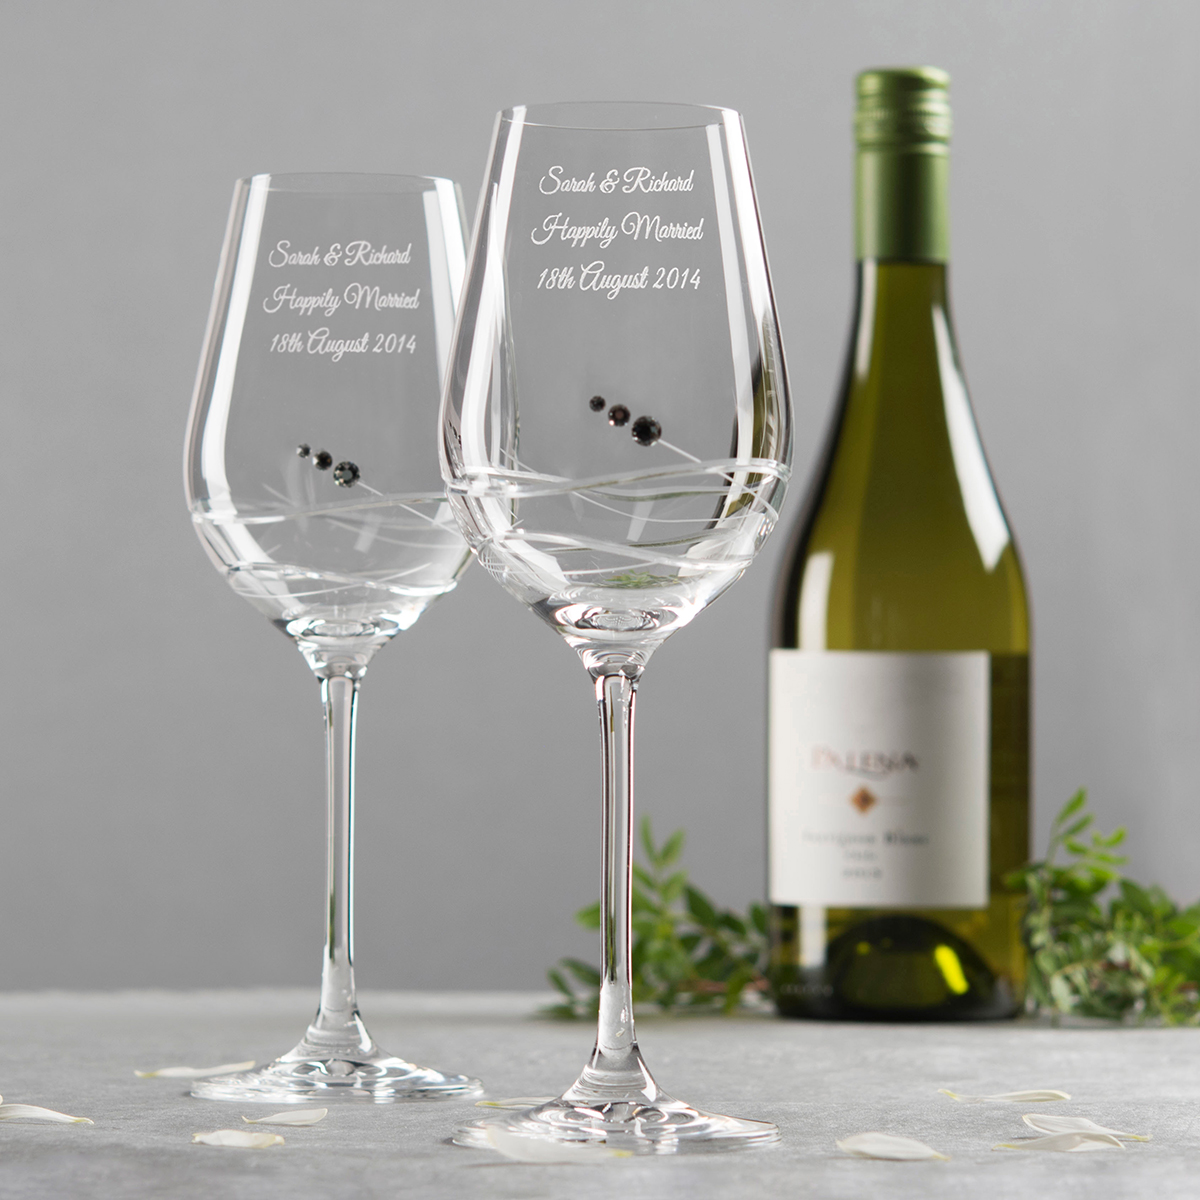 Luxury personalised gifts for couples - Swarovski stemware ...